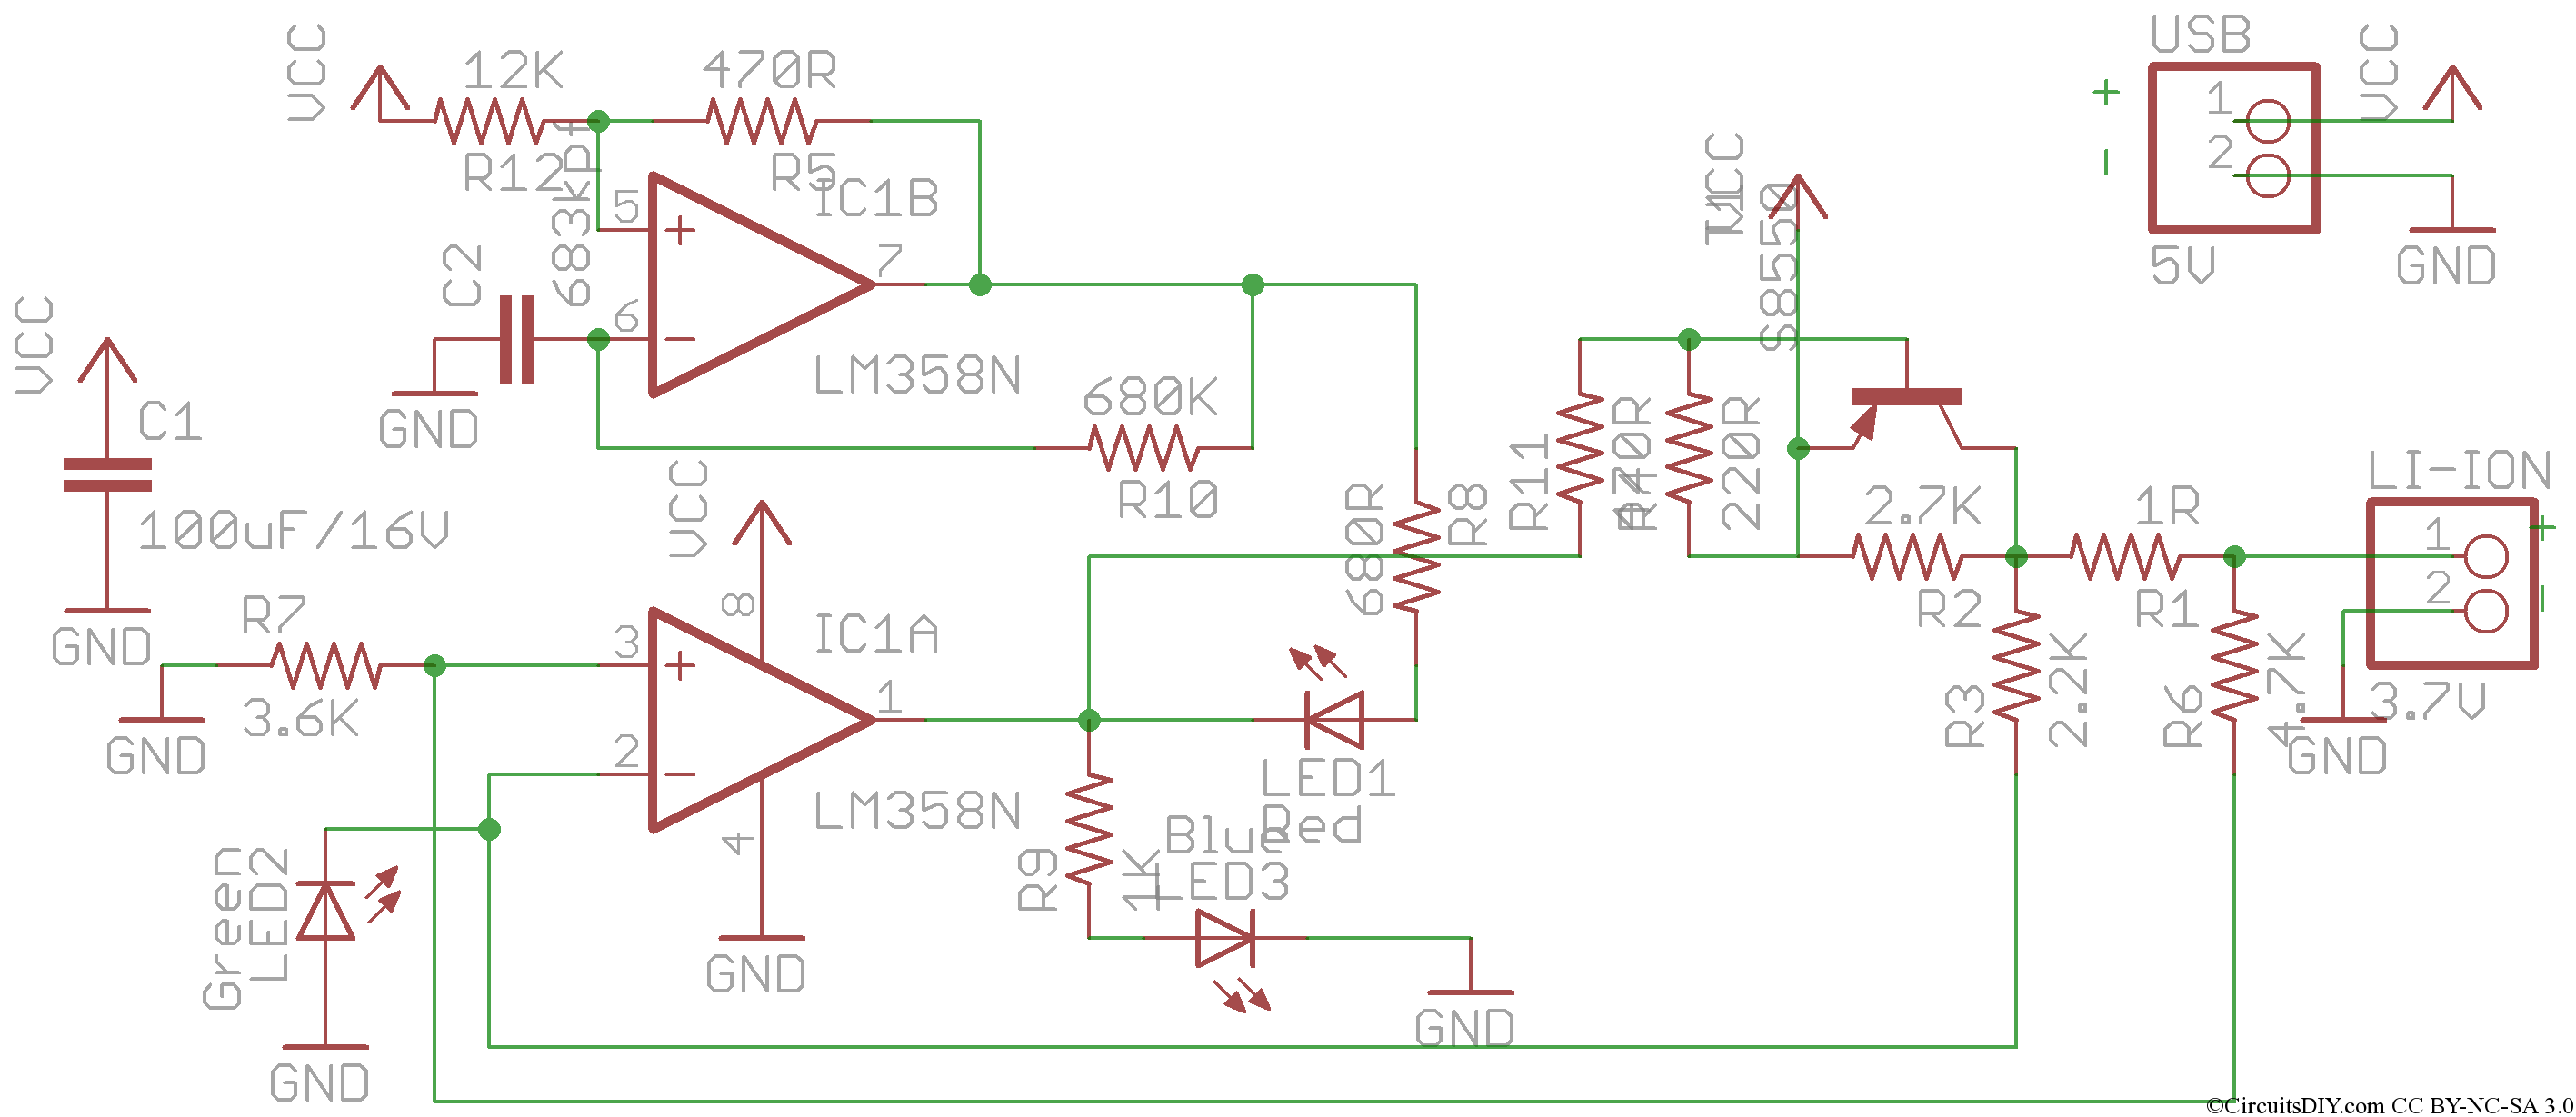 3 7v Lithium Ion Battery Charger Circuit Diagram Li Simple Nicad By Little Part Eleccircuit Lm358 Op Amp Based Usb Circuits Diy